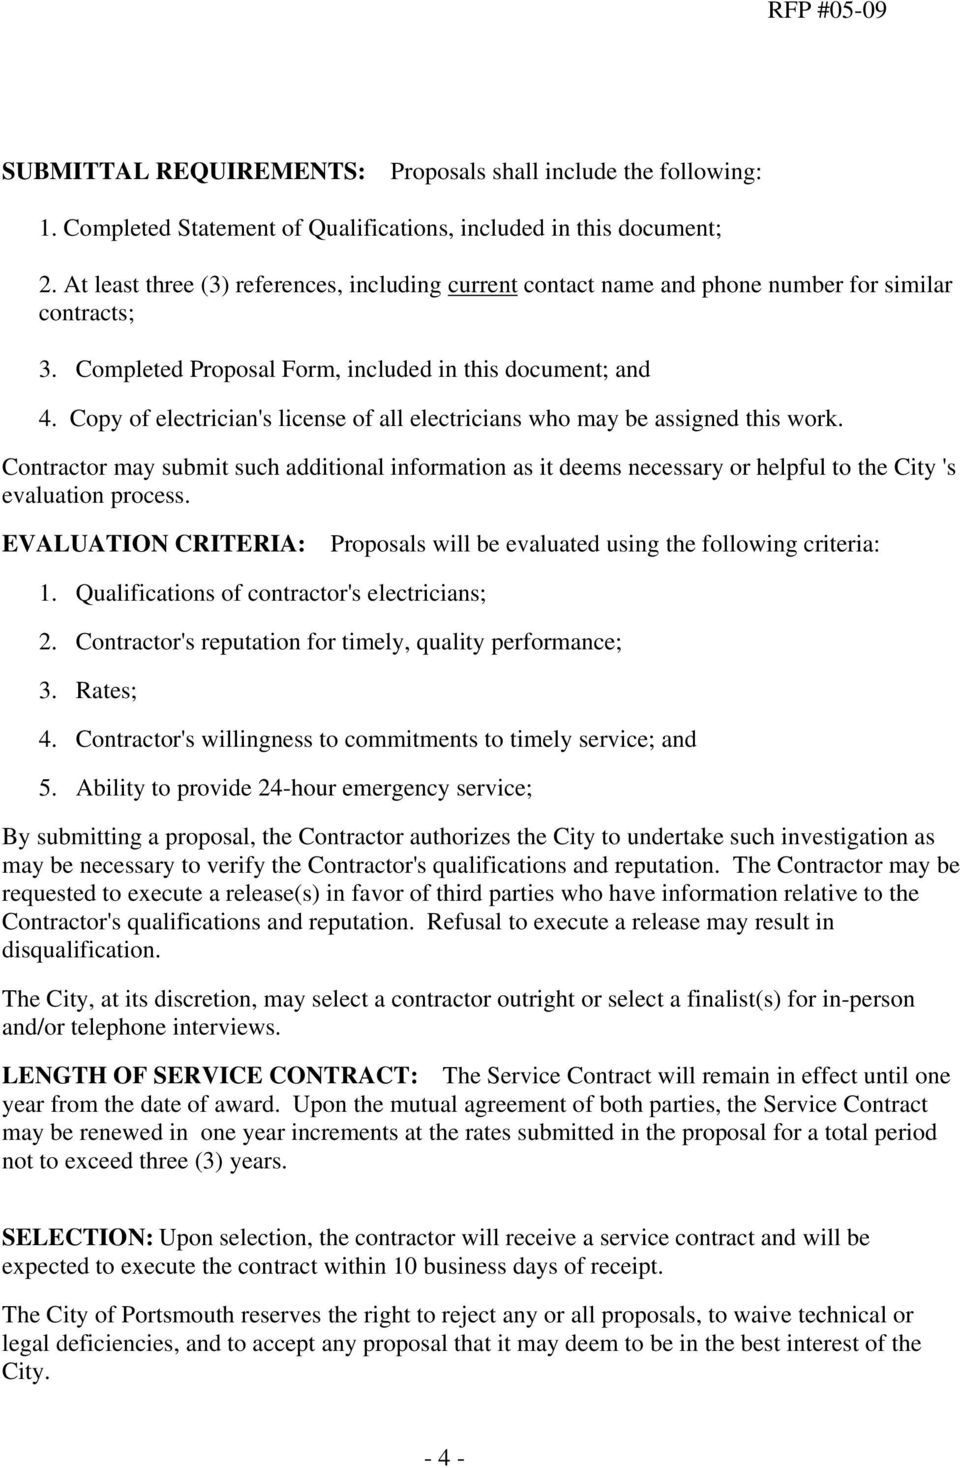 Copy of electrician's license of all electricians who may be assigned this work. Contractor may submit such additional information as it deems necessary or helpful to the City 's evaluation process.